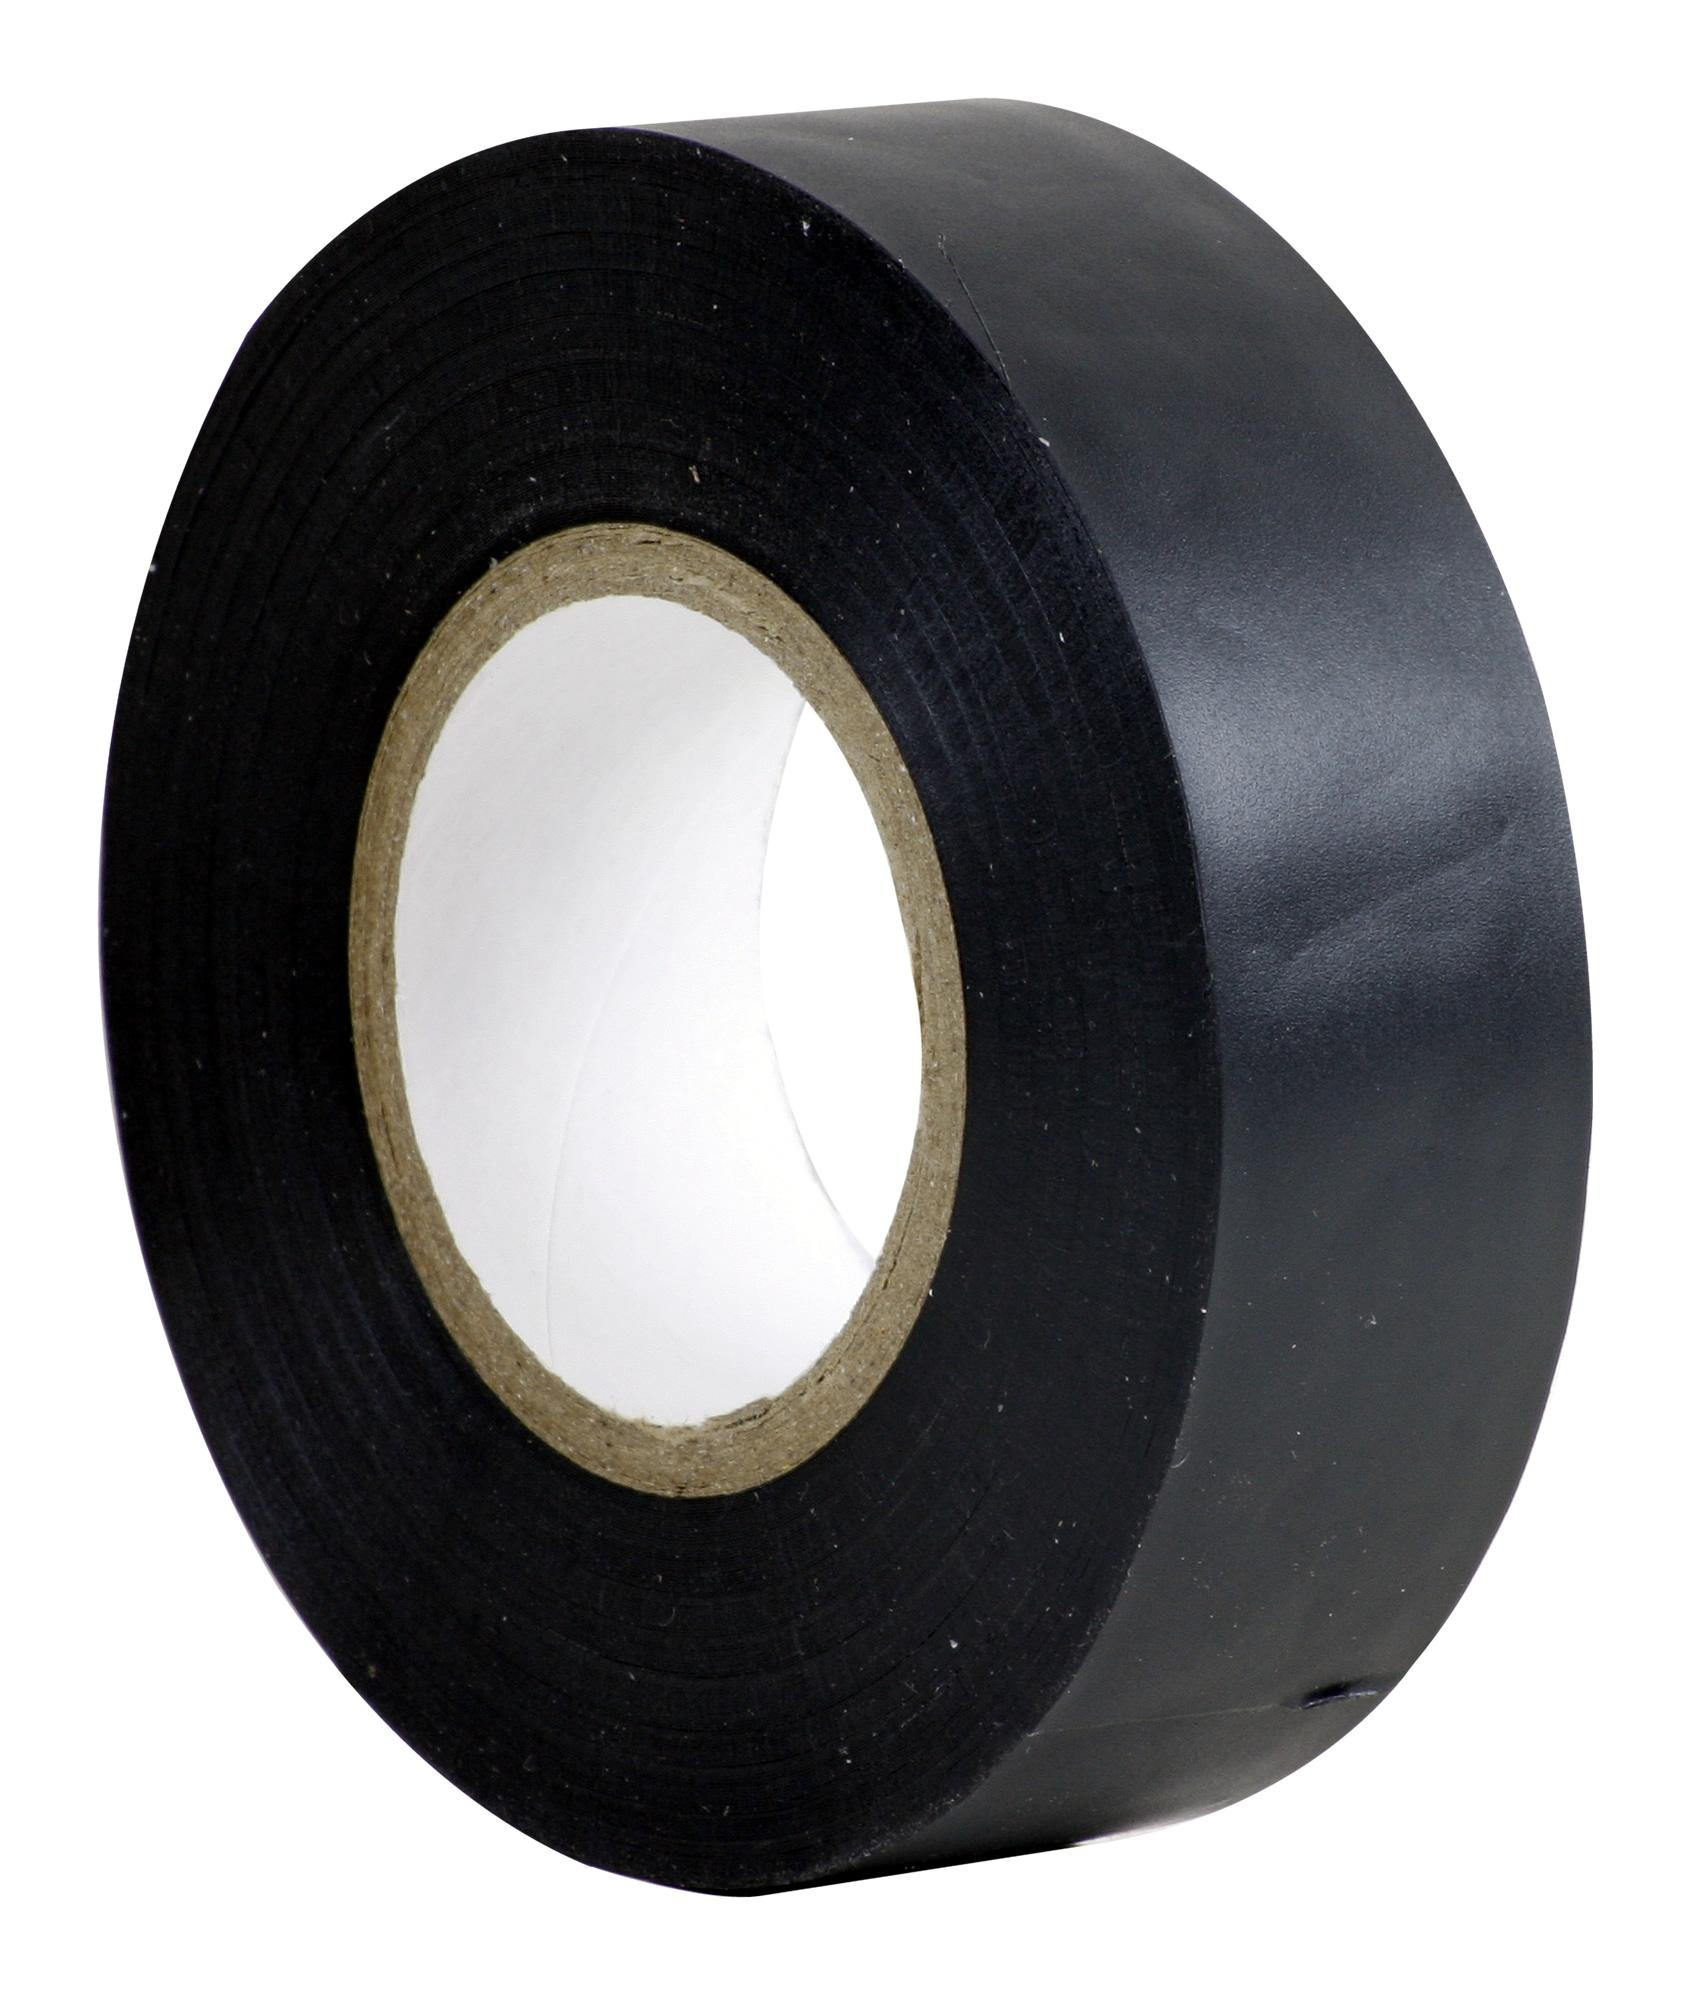 halfords insulation tape black 19mm rh halfords com Auto Wire Loom Auto Wire Loom